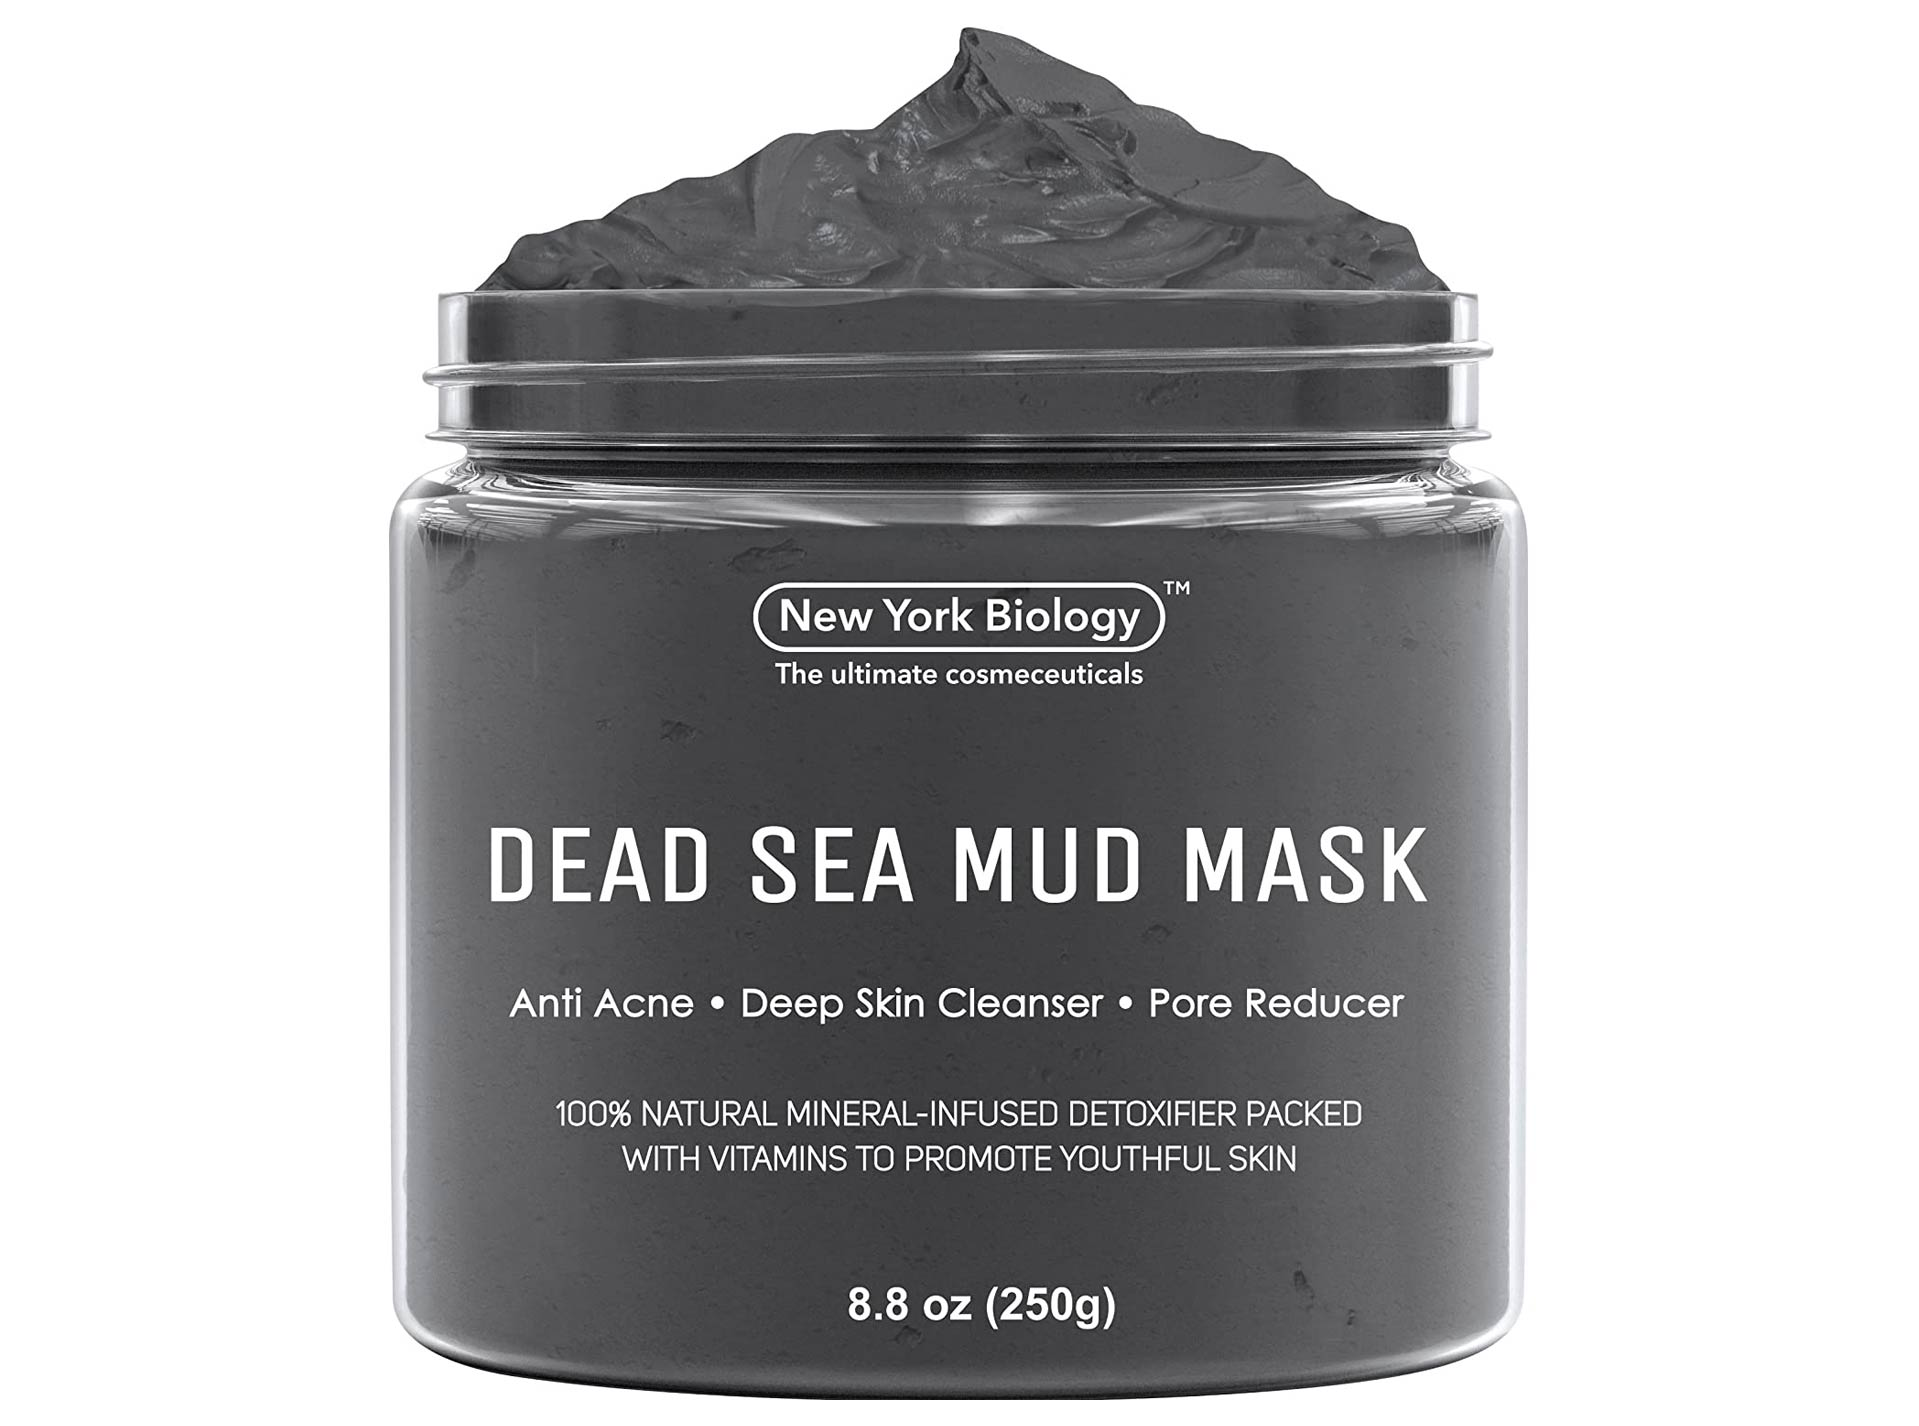 New York Biology Dead Sea Mud Mask for Face and Body - Natural Spa Quality Pore Reducer for Acne, Blackheads and Oily Skin - Tightens Skin for A Healthier Complexion